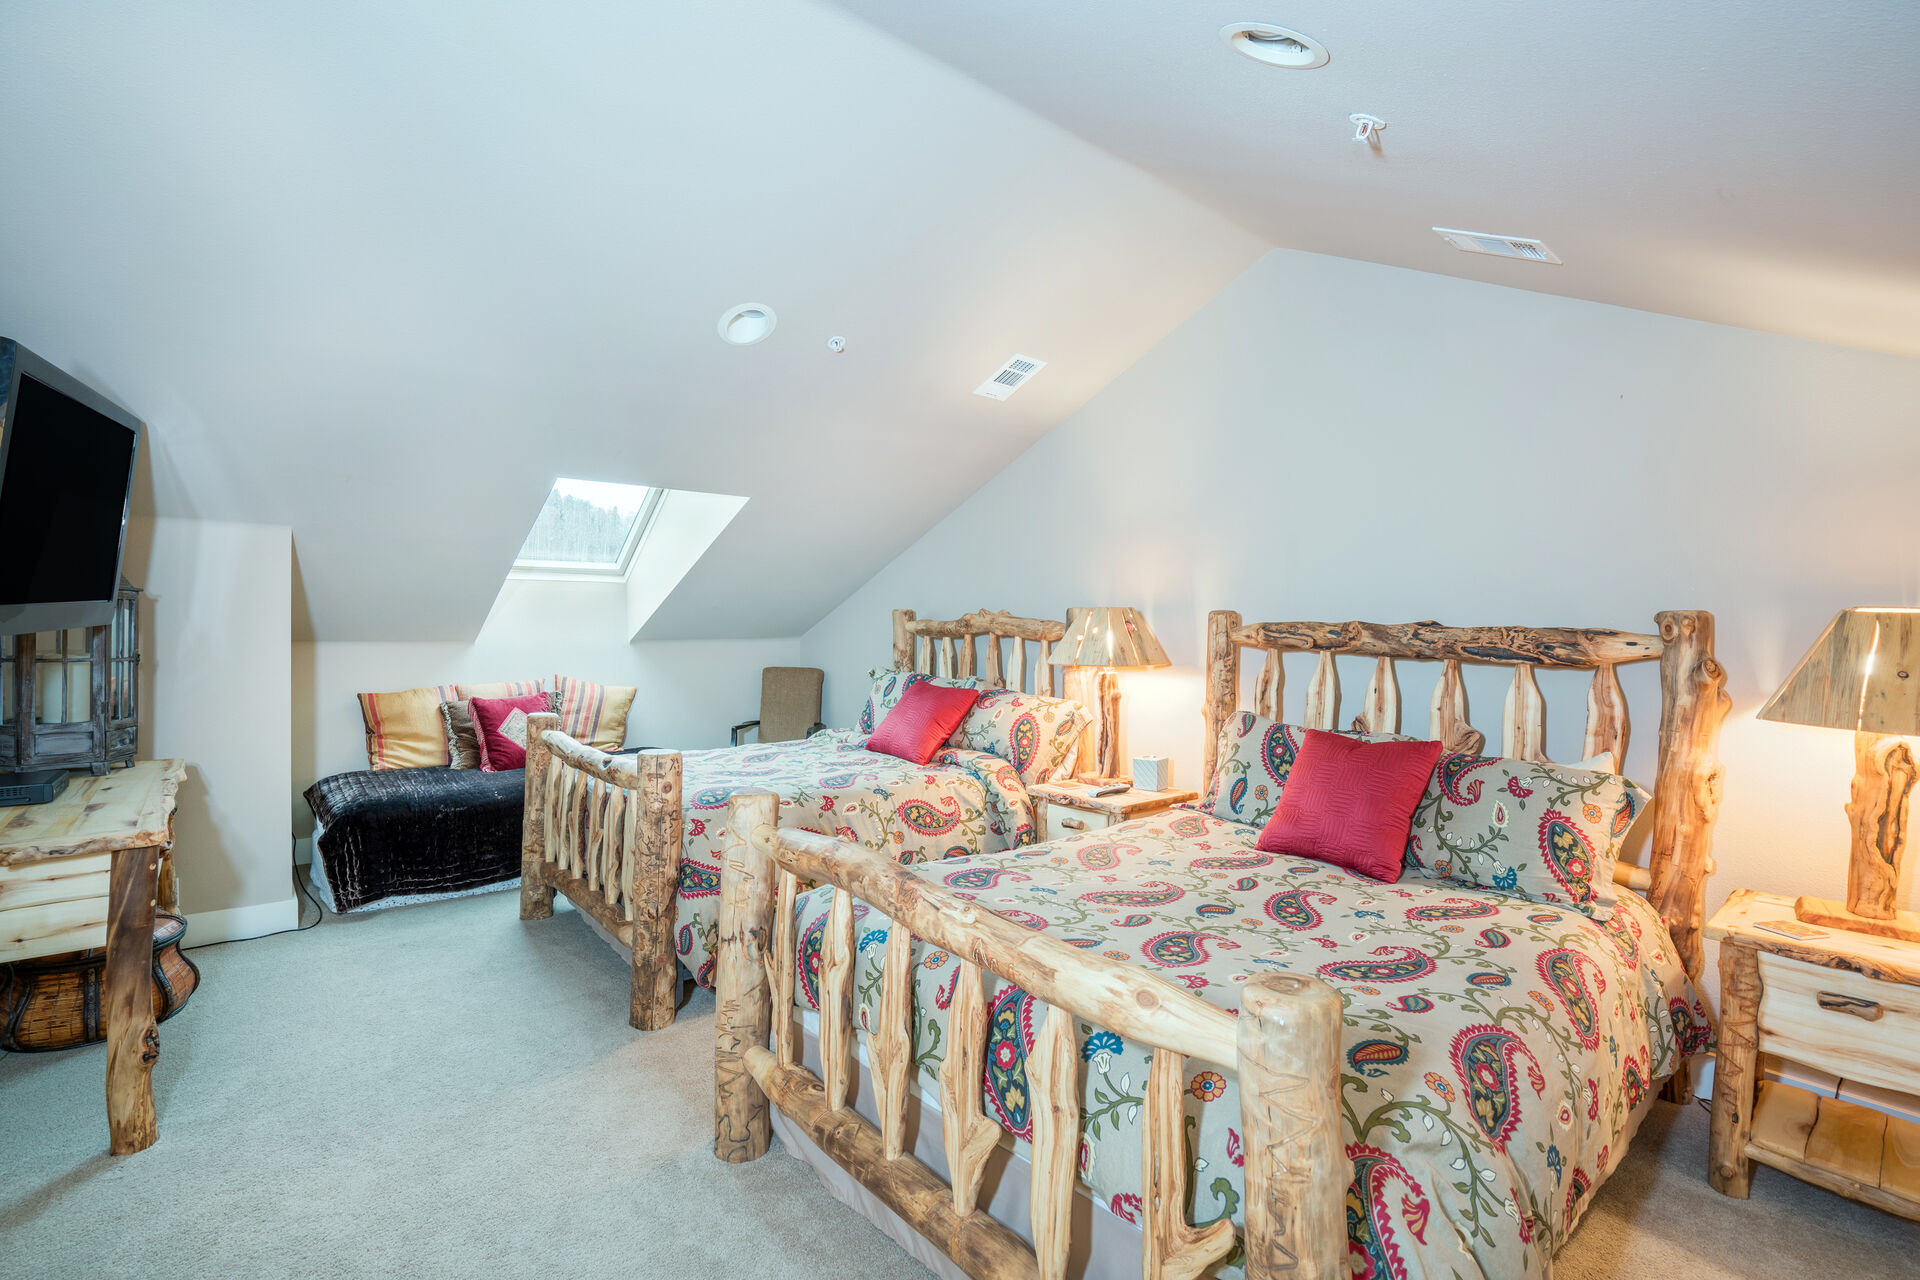 Bedroom with Vaulted Ceilings and Two Beds at Telluride Cabin Rental